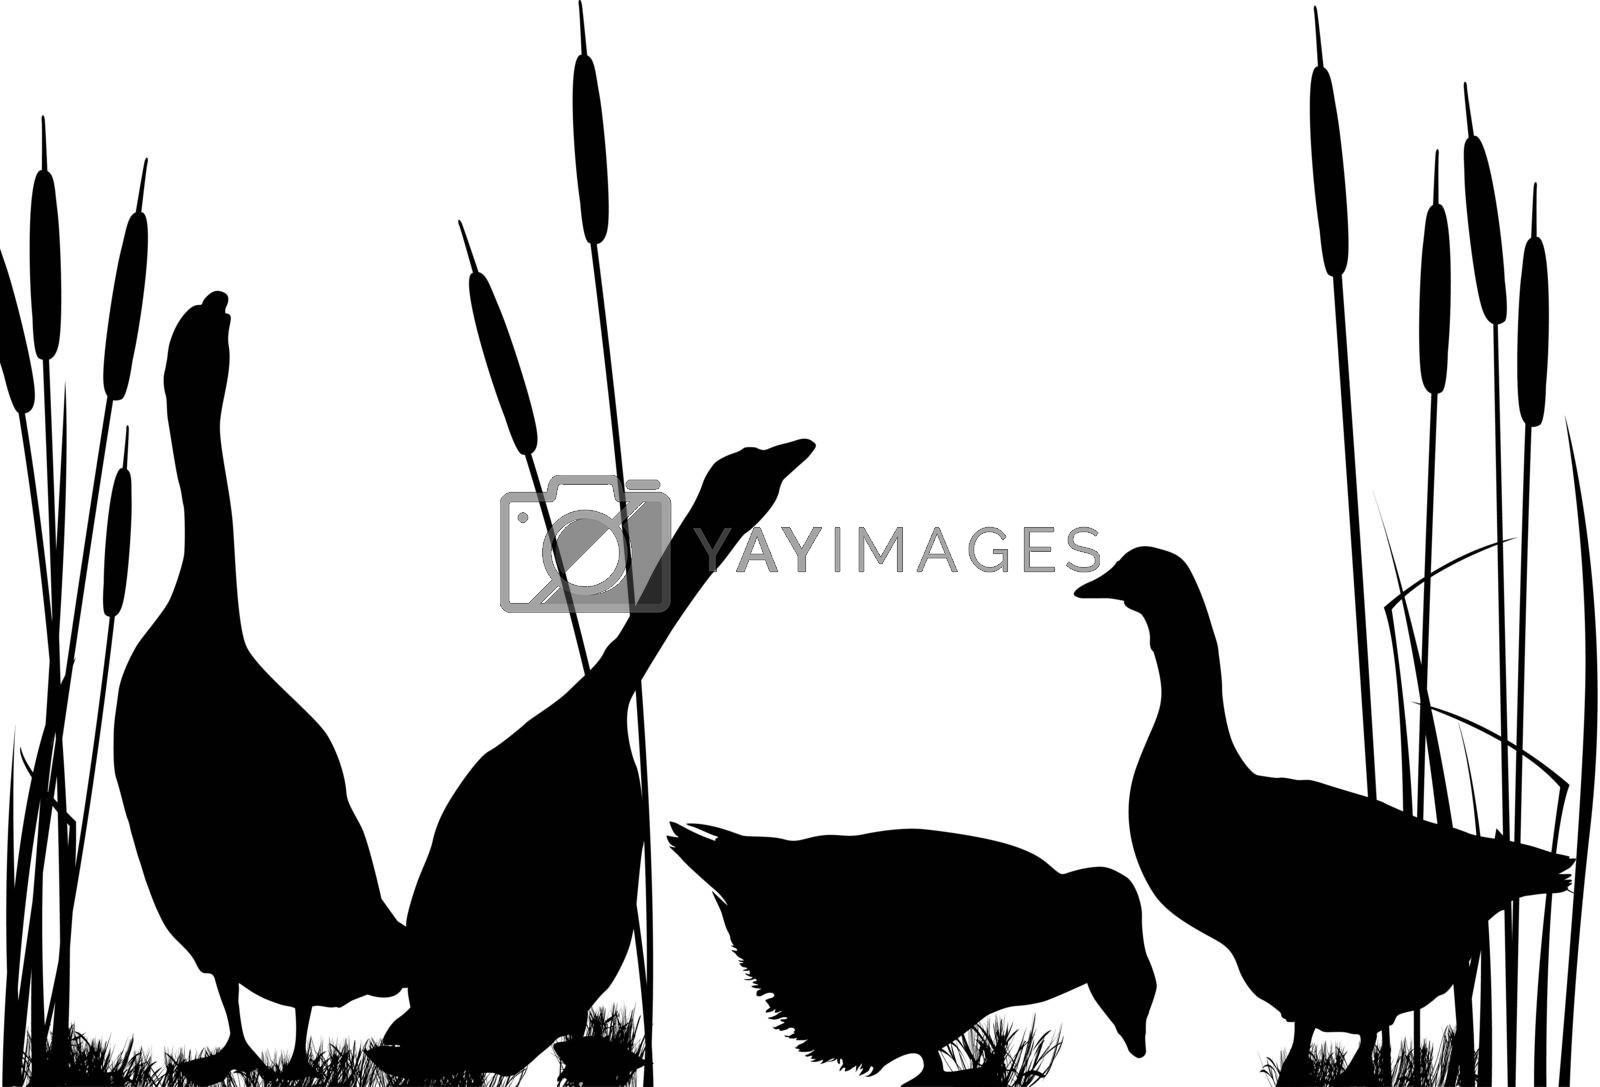 Goose silhouettes over white background